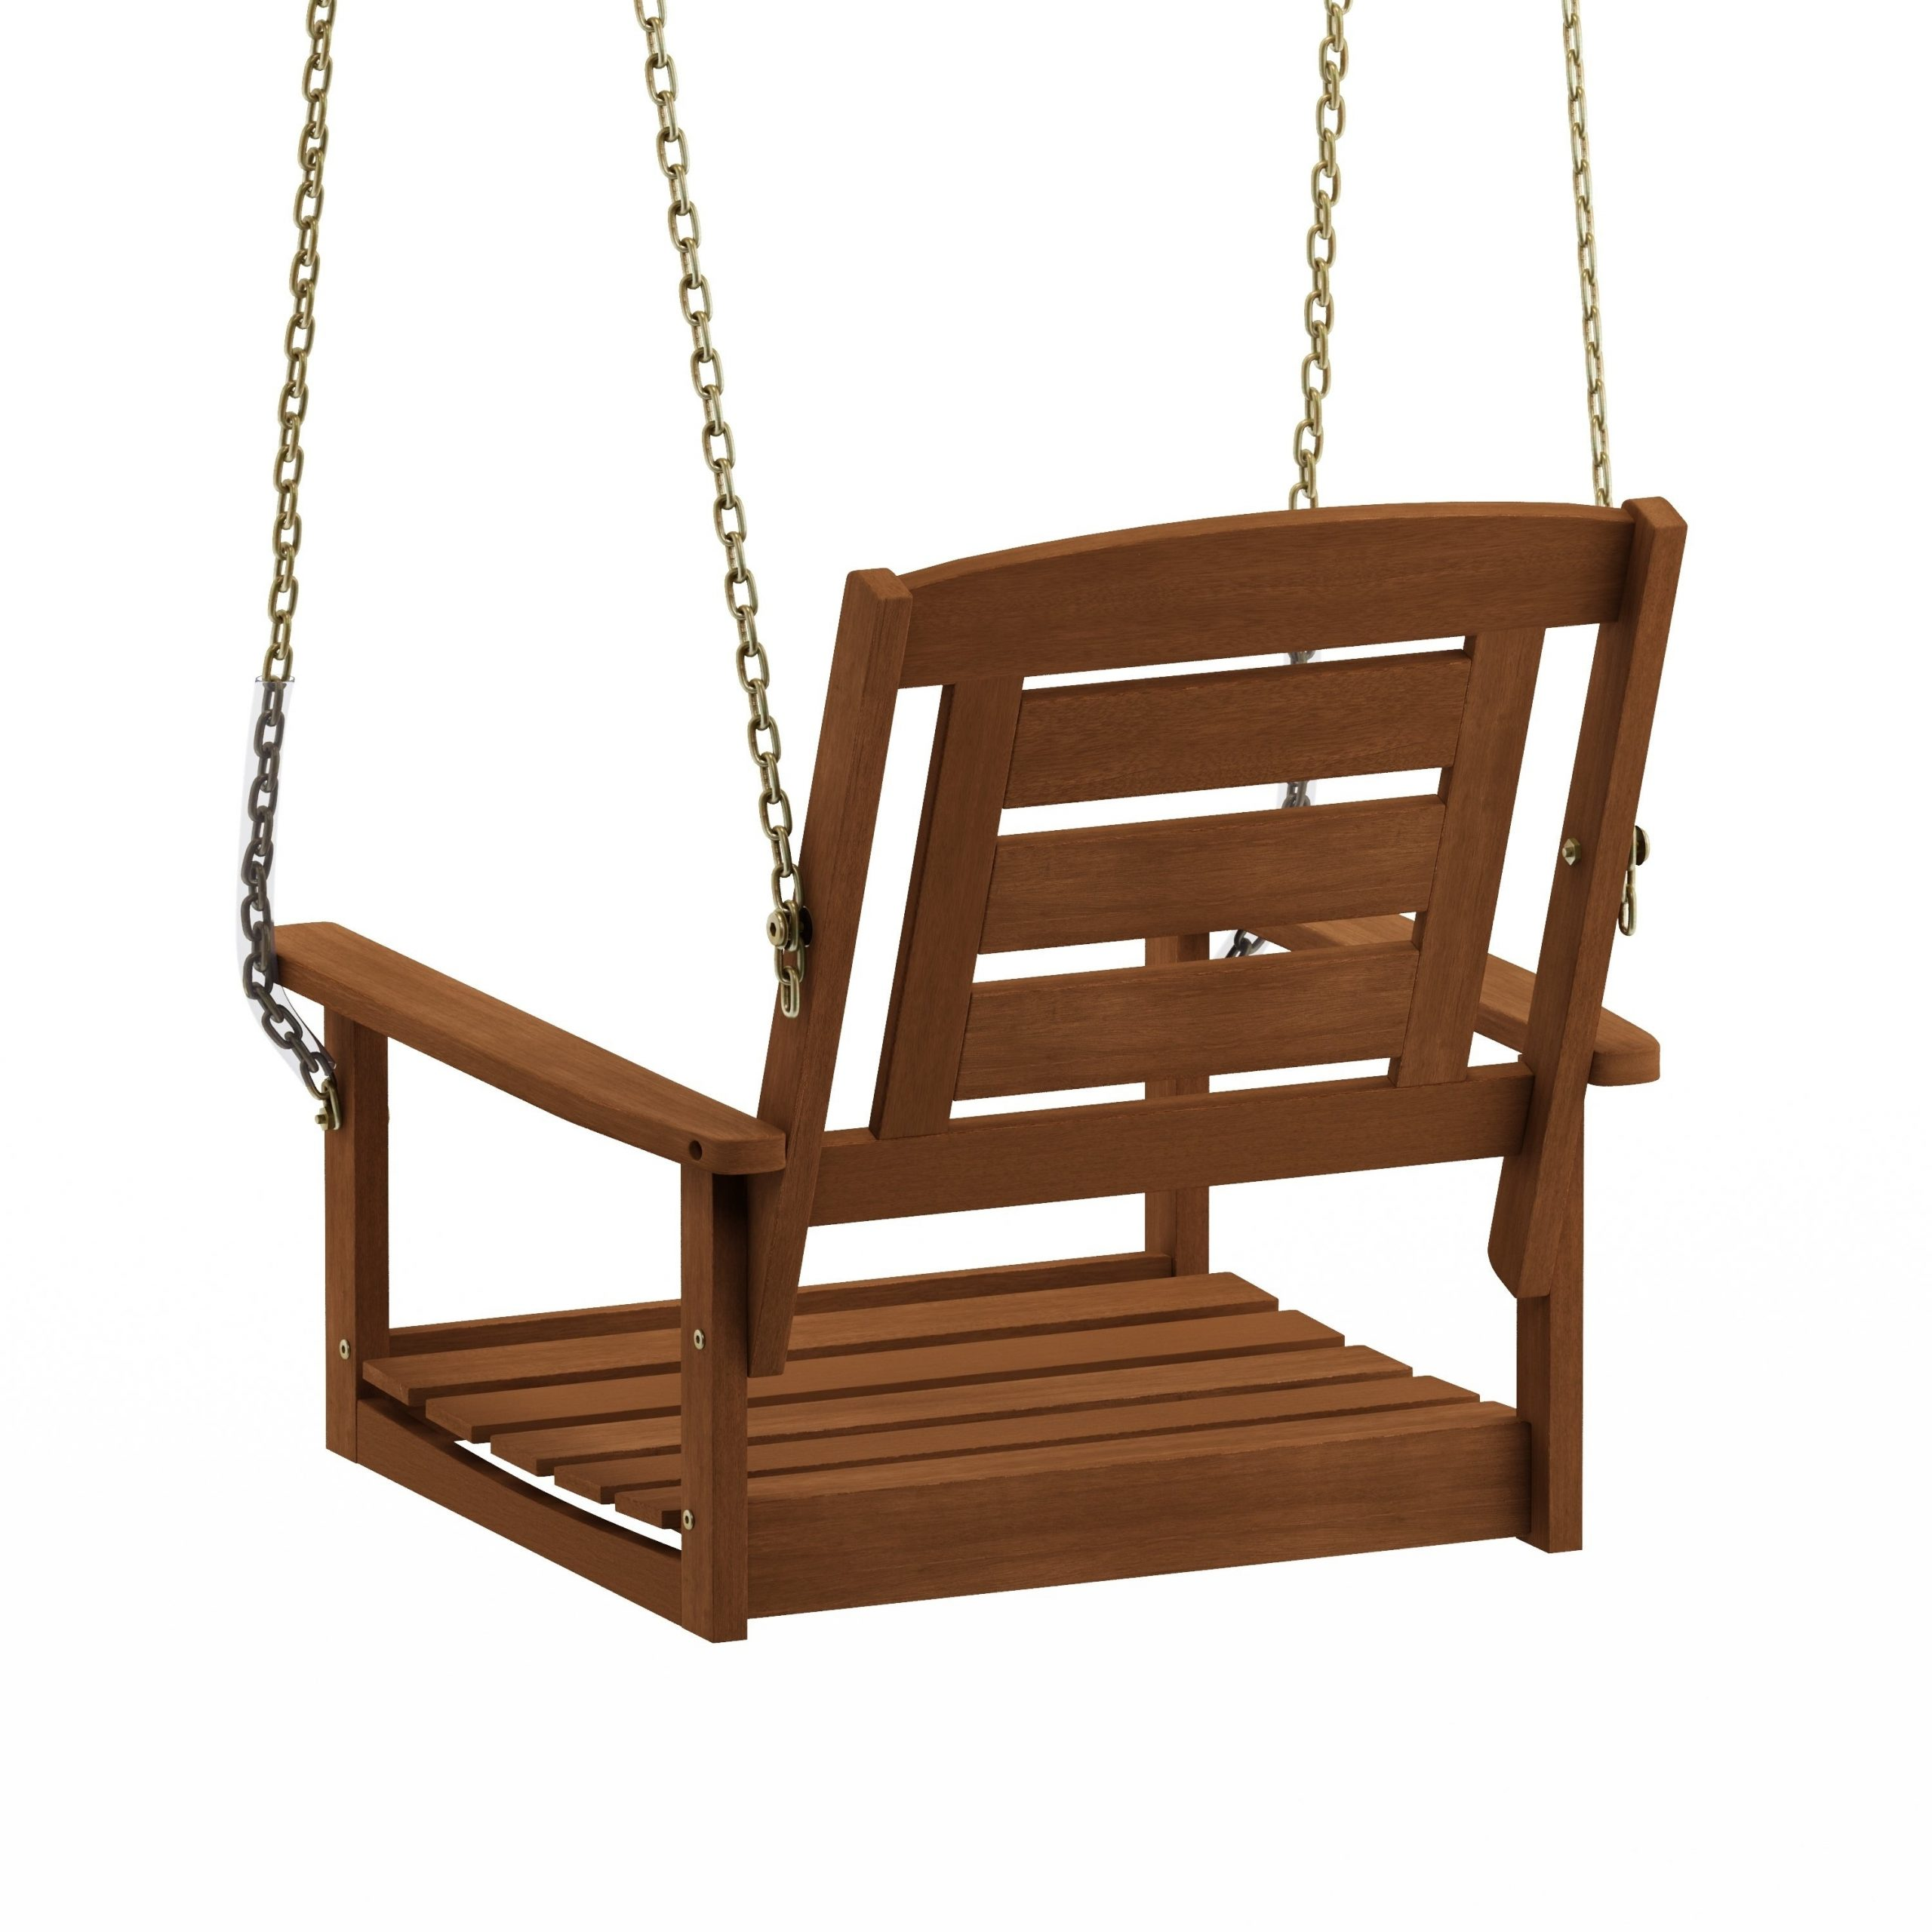 Recent Havenside Home Ormond Hardwood Single Hanging Porch Swing With Chain Intended For Porch Swings With Chain (Gallery 2 of 26)